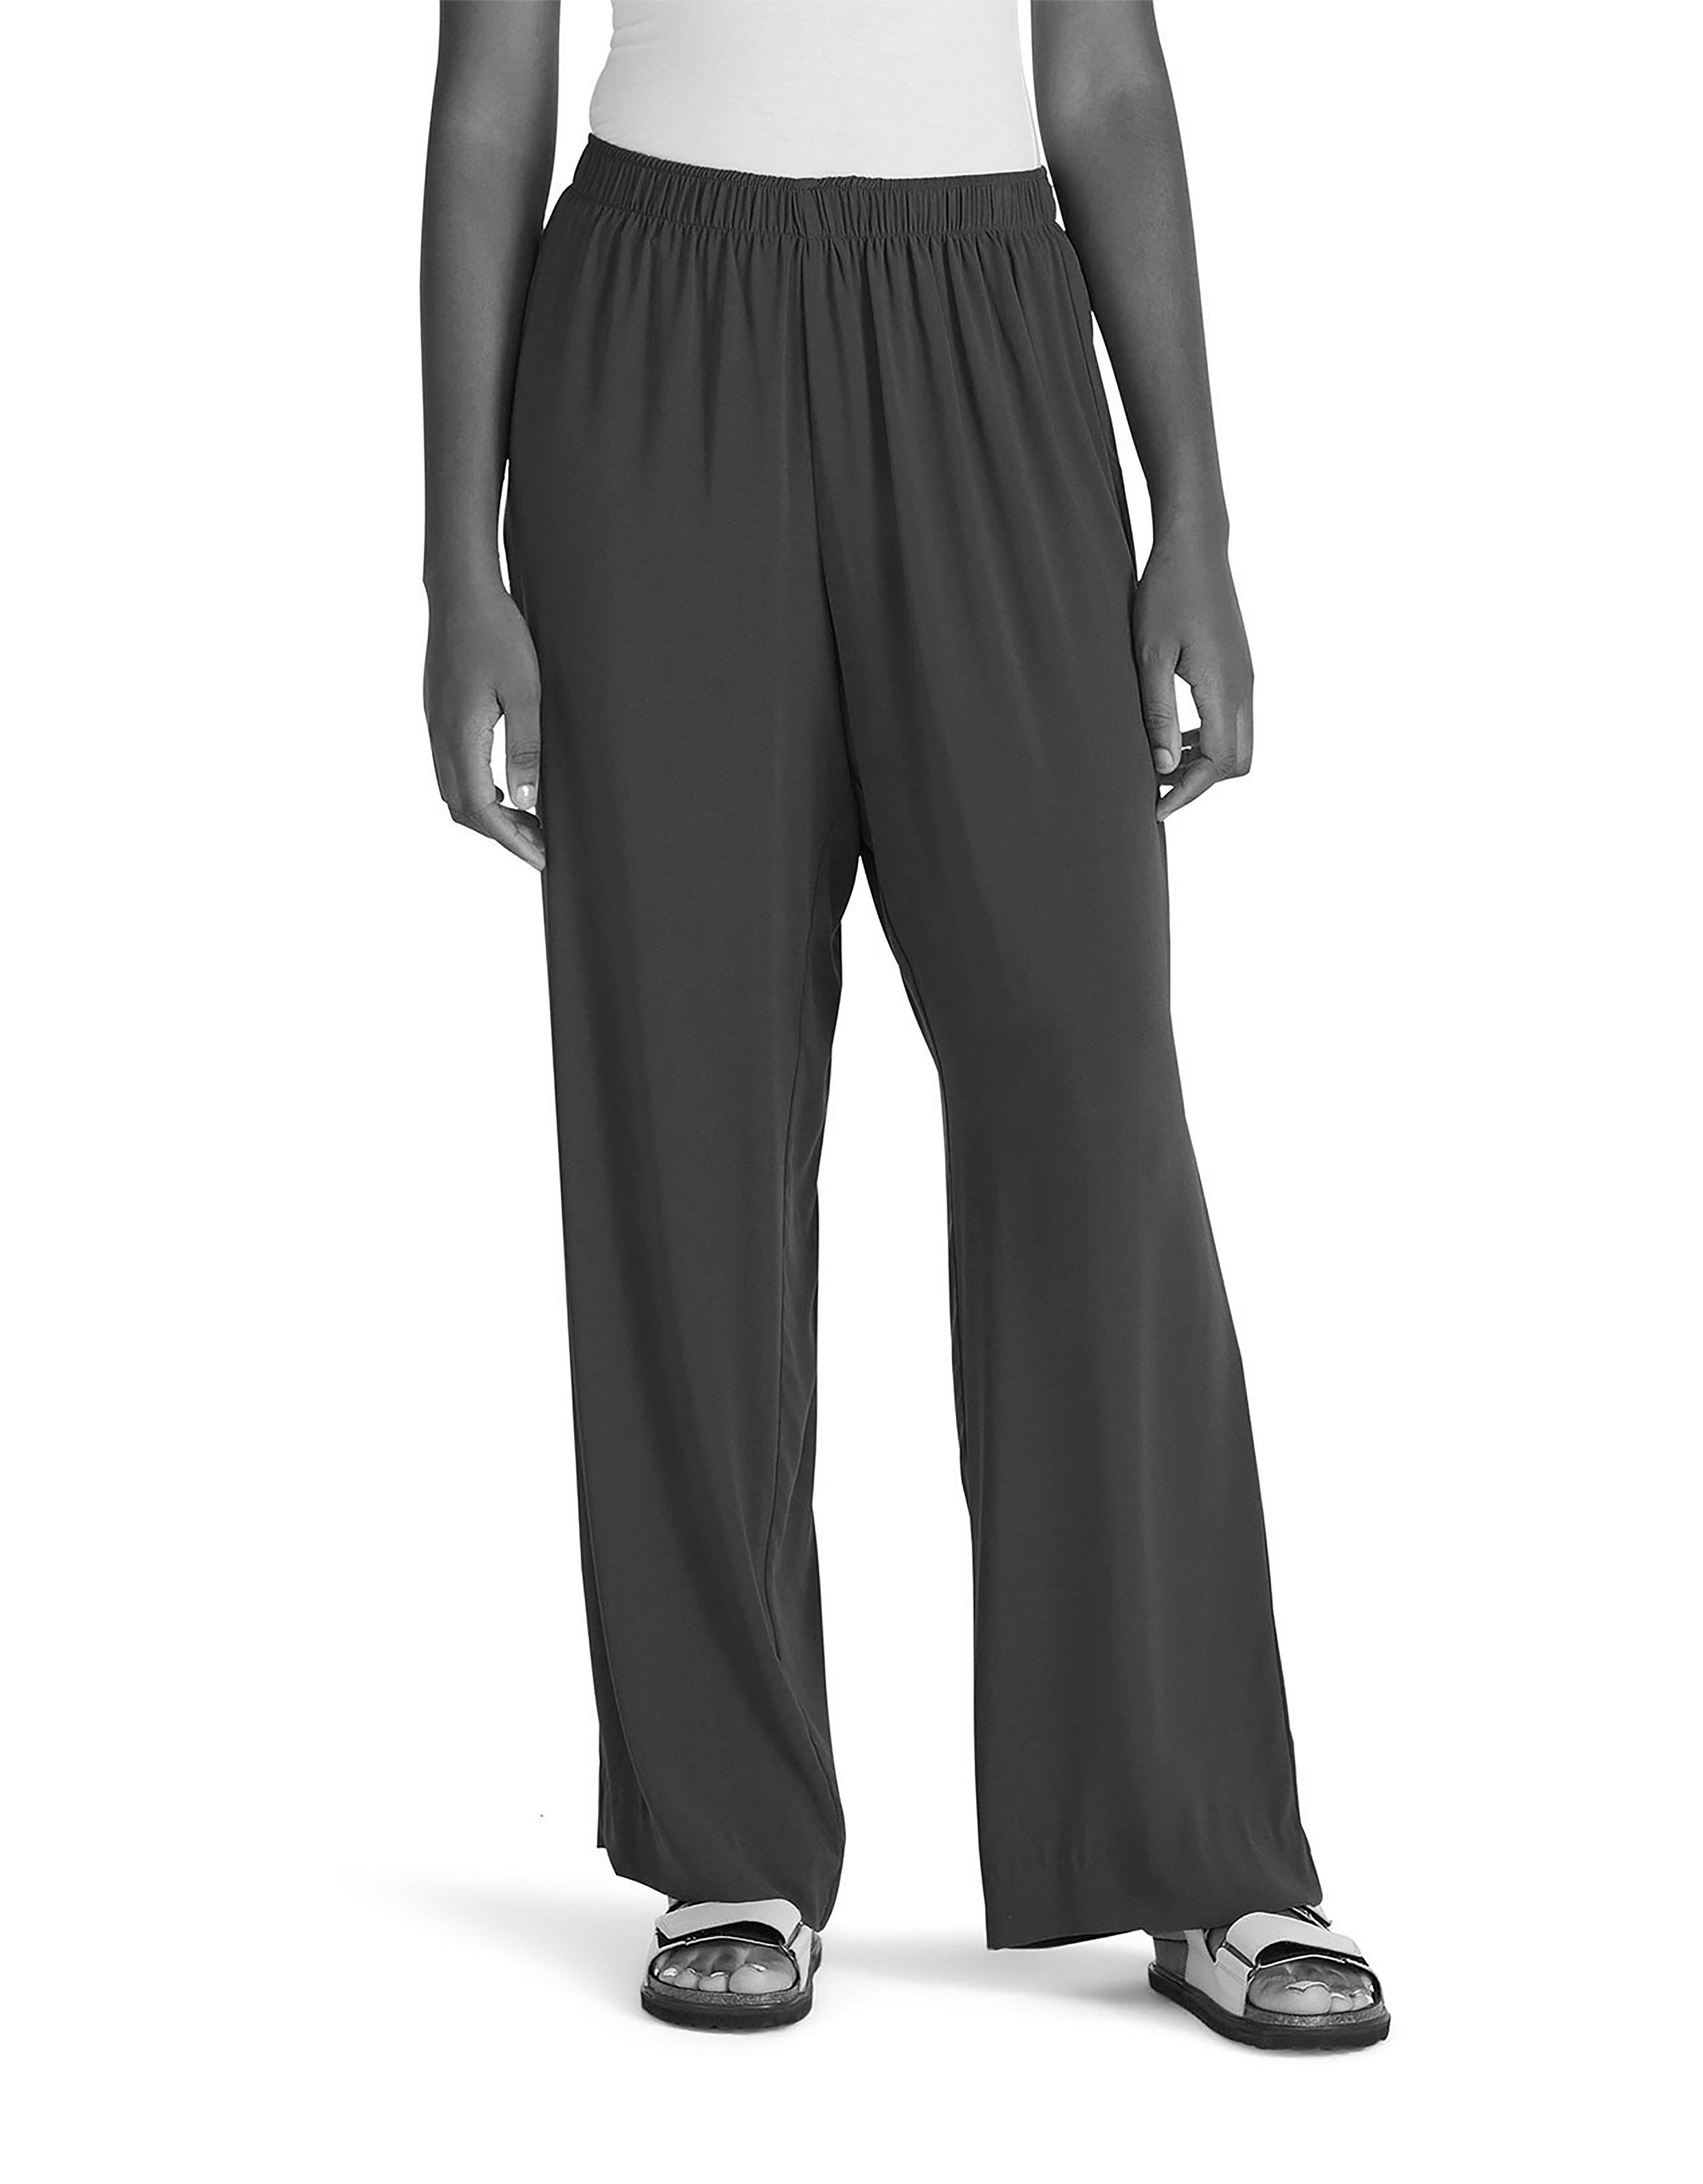 Pull-on Pant in Black 5